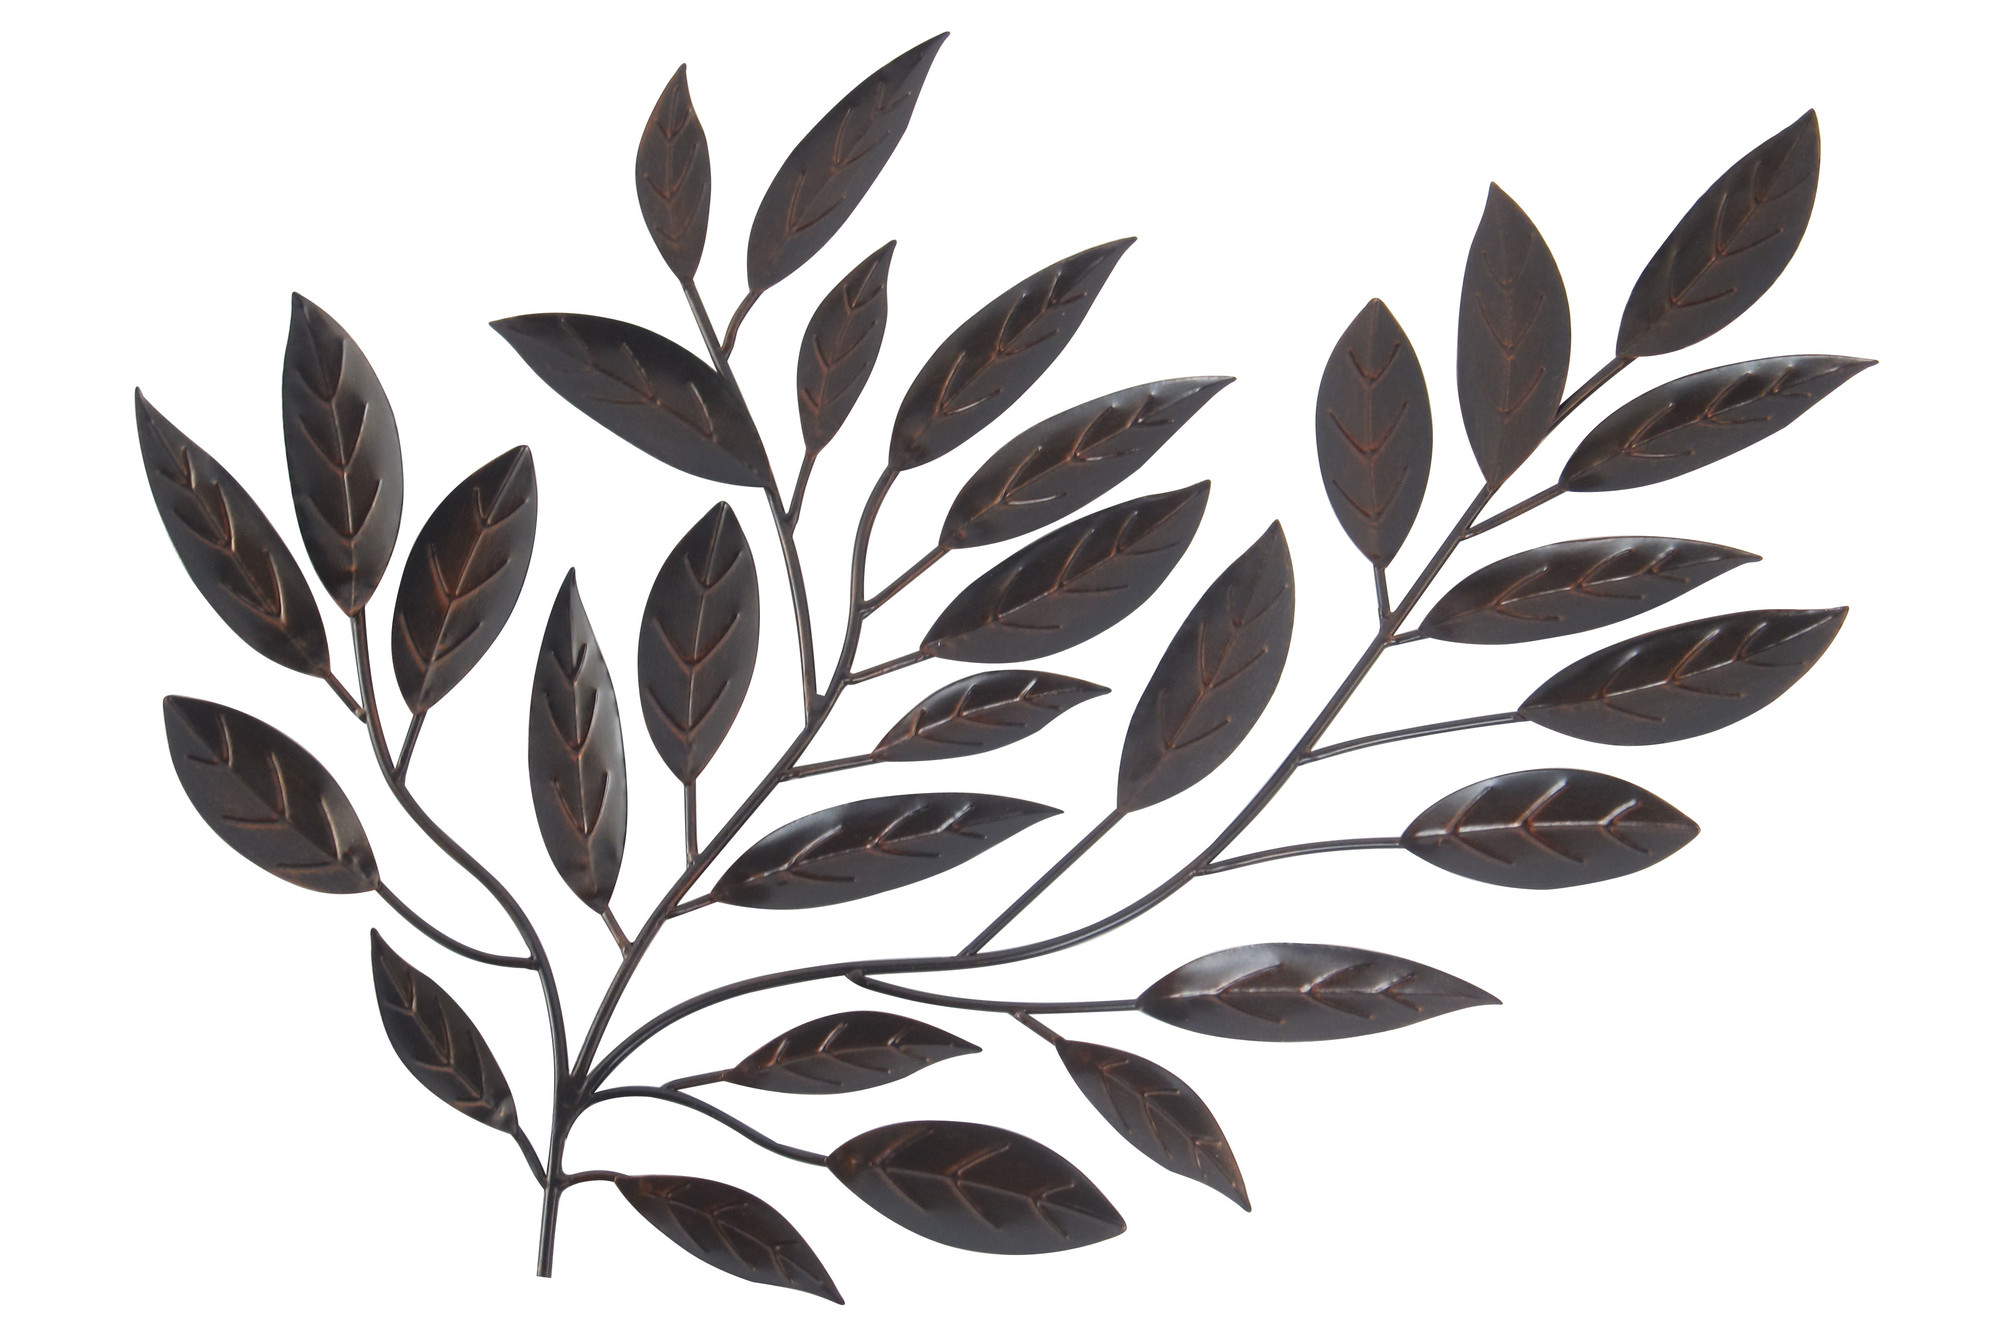 2020 Olive/gray Metal Wall Decor Intended For Forged Metal Leaves – Floral Metal Wall Art (View 2 of 20)